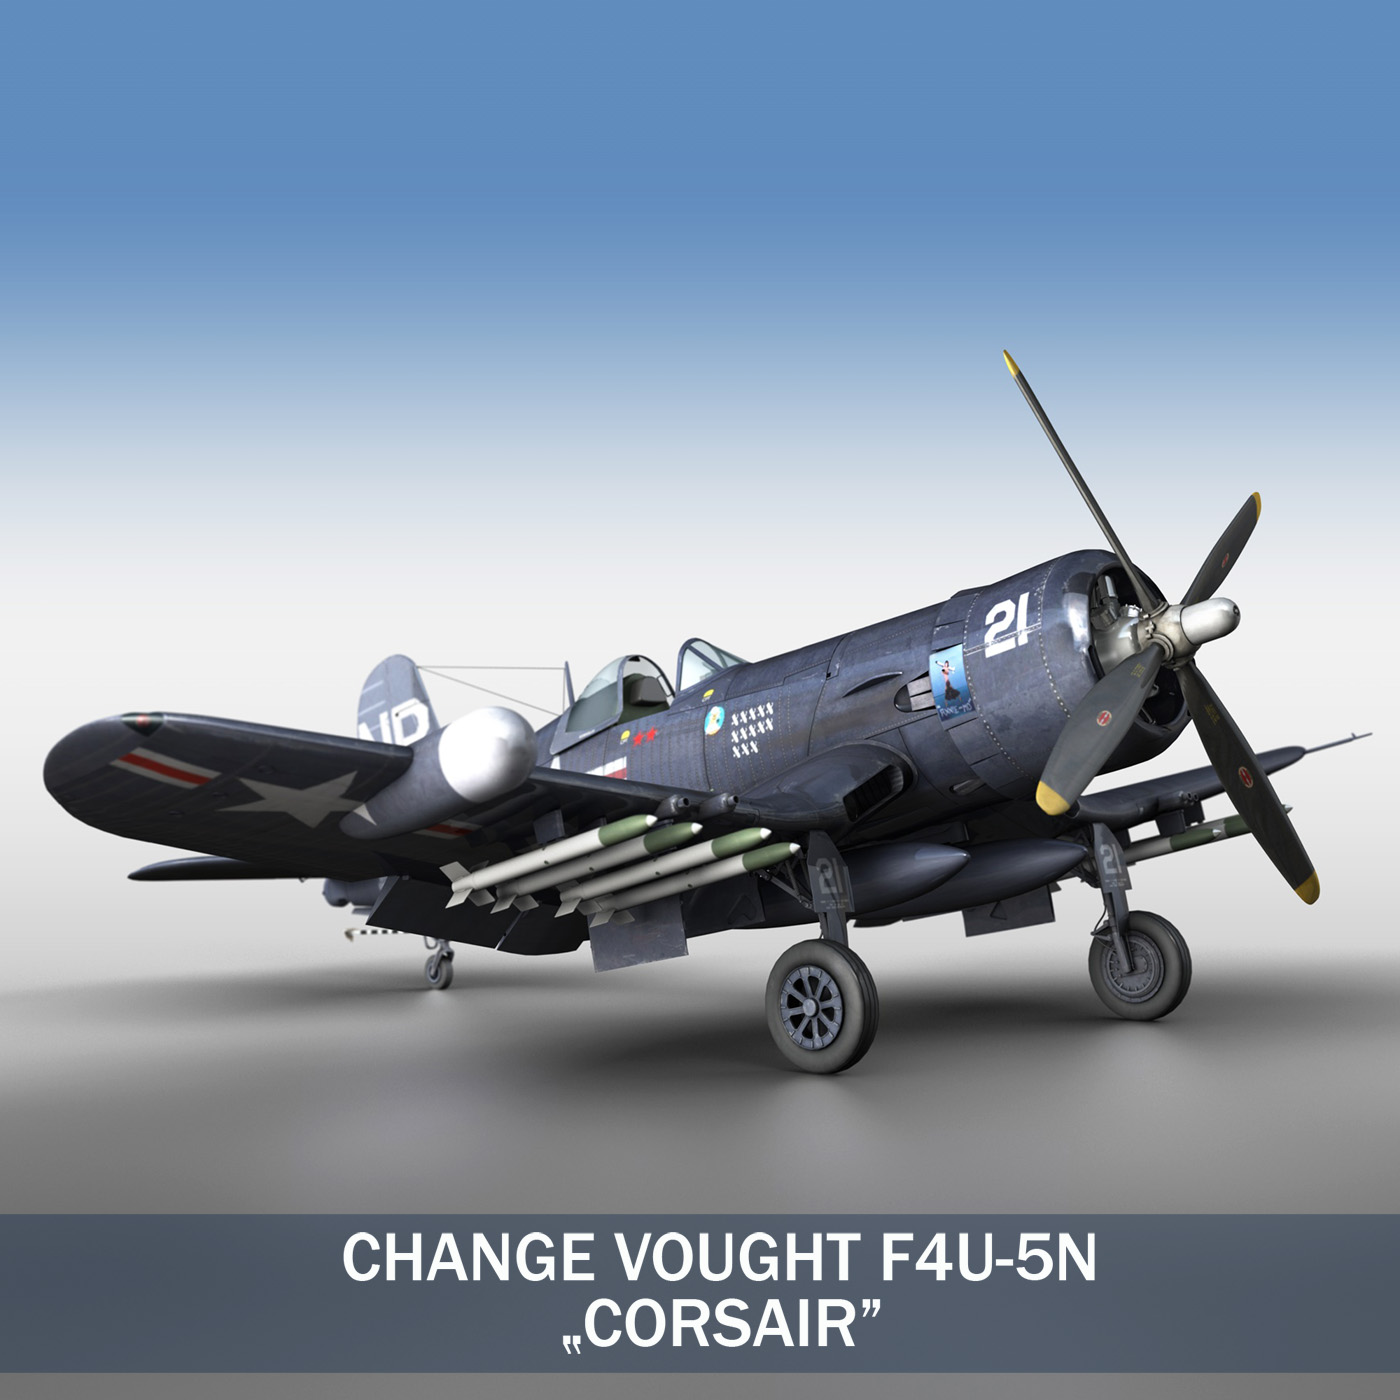 newid vought f4u 5n corsair 3d model 3ds fbx c4d lwo obj 187325